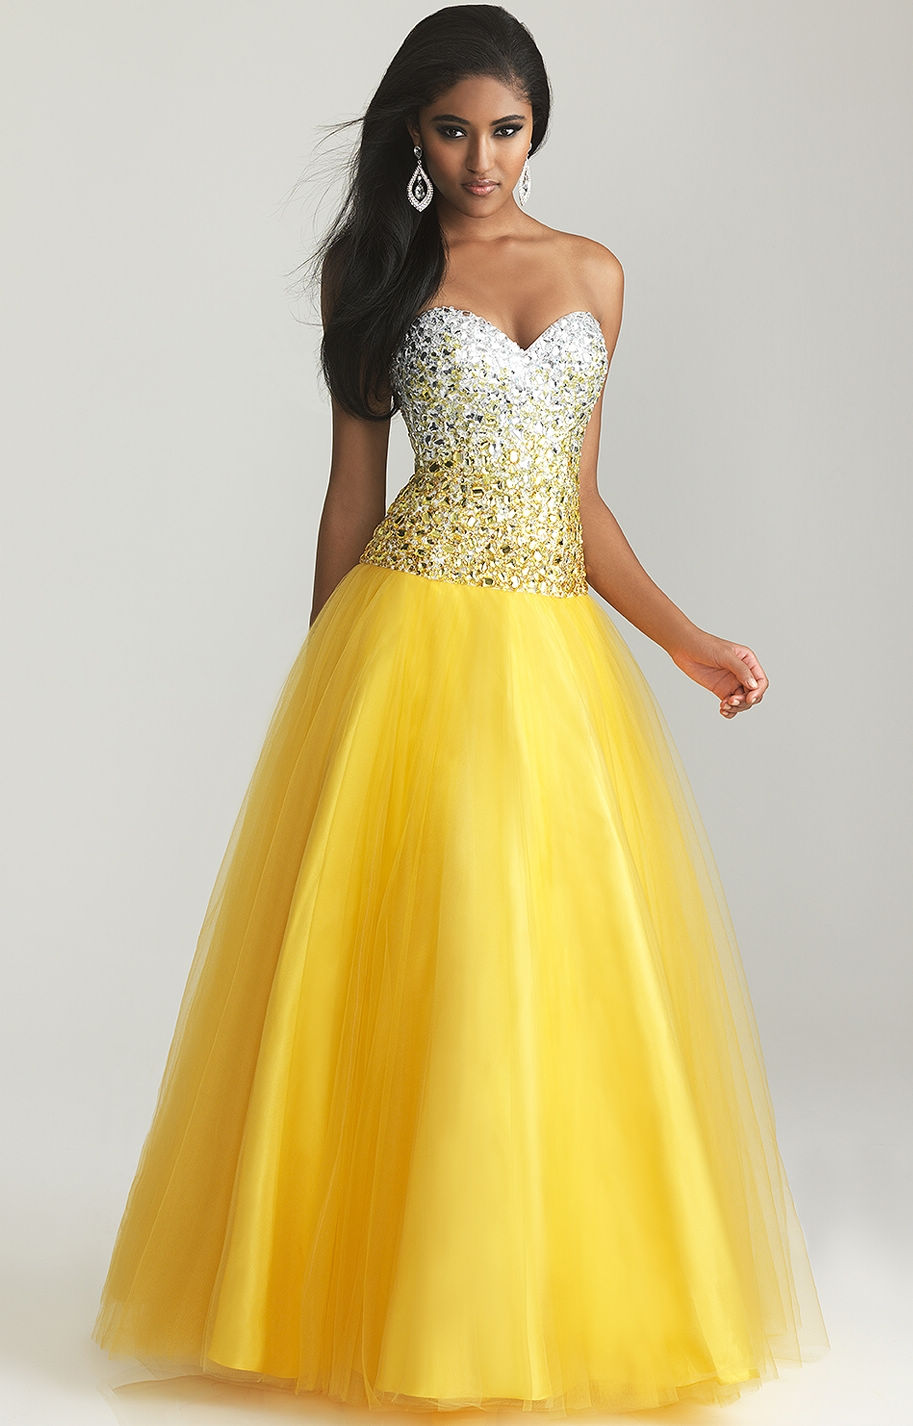 Yellow Strapless Long Prom Dresses 2013 By Night ...